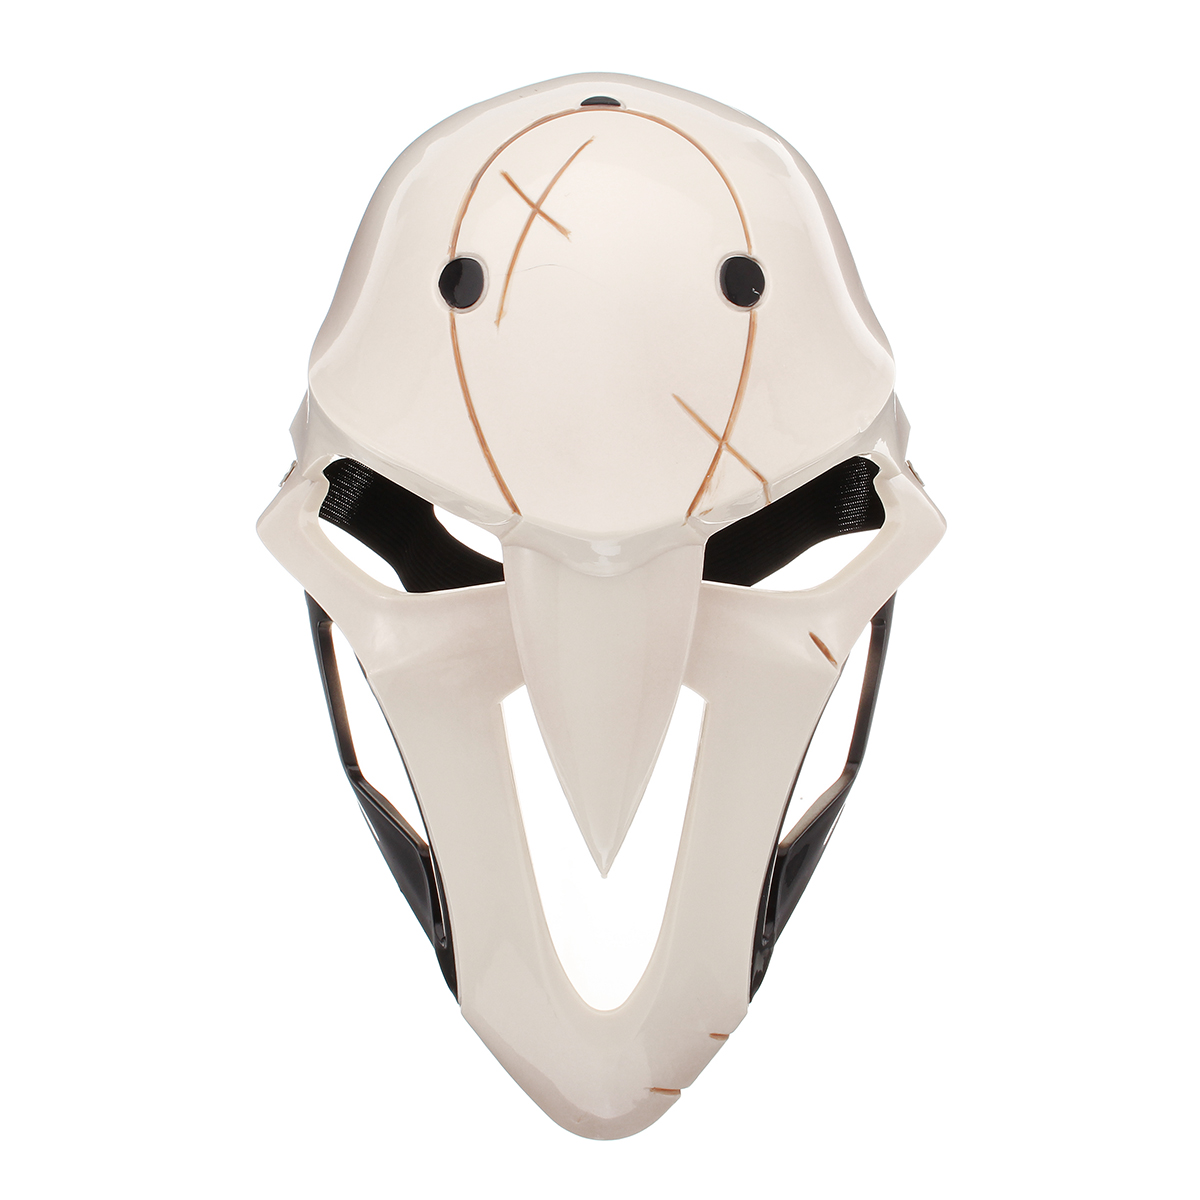 Cosplay For Overwatch Reaper Mask Helmet Plastic 1:1 Game Cos Props Gift Fancy Dress